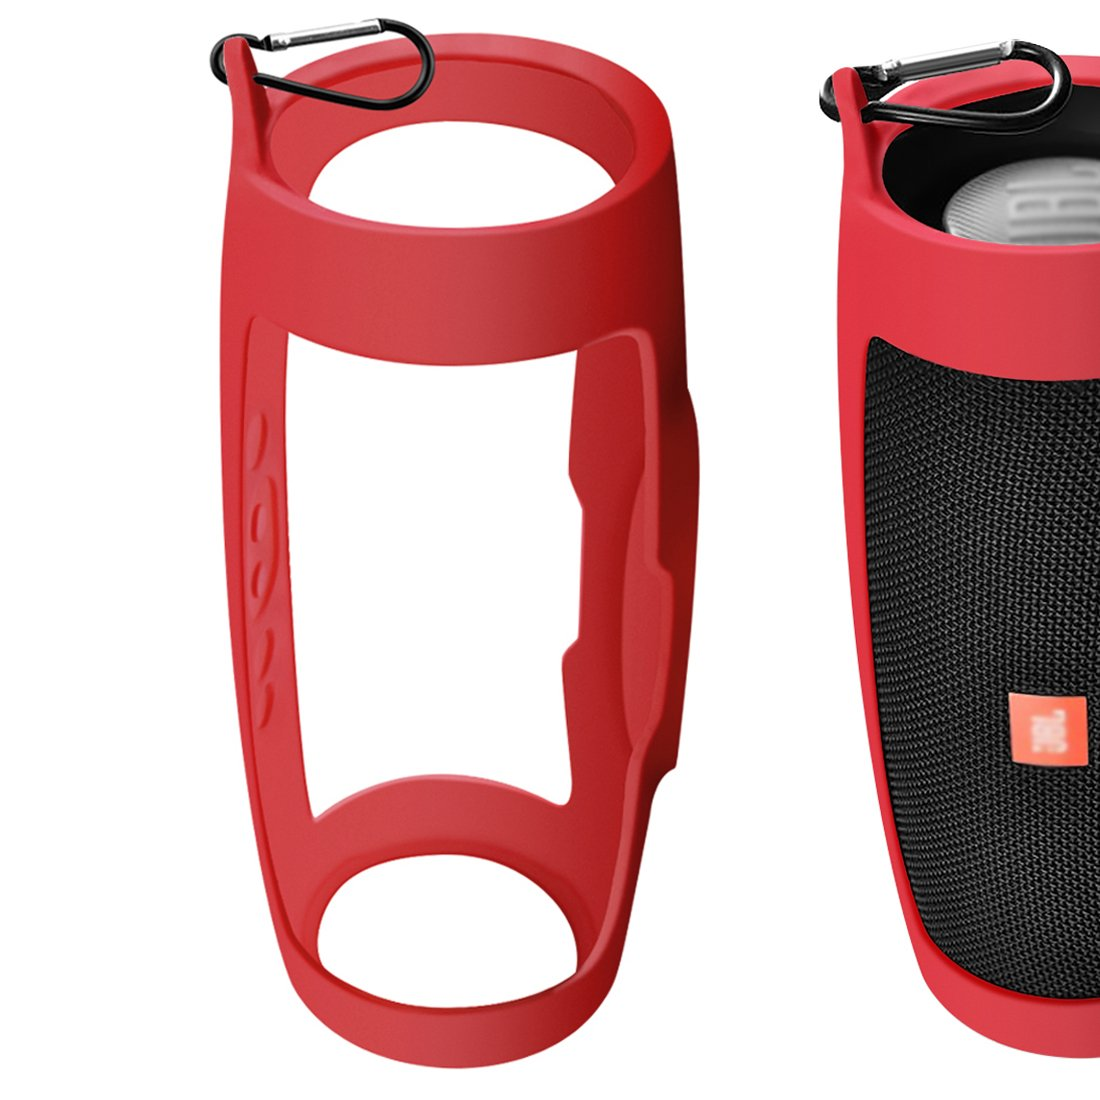 Protective Wearable Lightweight Silicone Case Cover Keychain for JBL Charge 4 Waterproof Portable Wireless Bluetooth Speaker